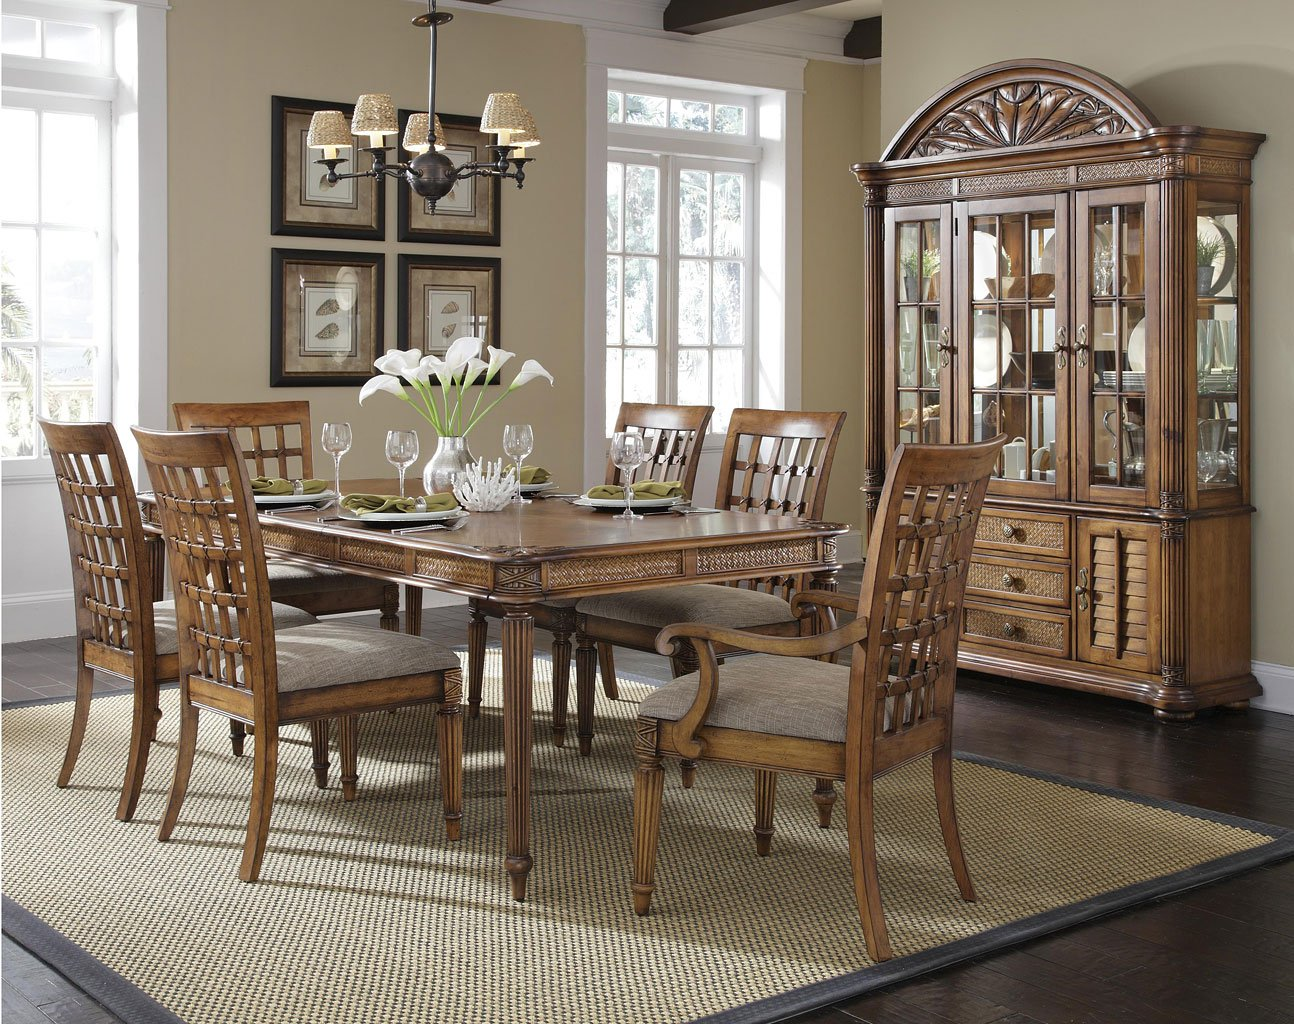 Merveilleux Palm Court Rectangular Dining Room Set W/ Lattice Chairs